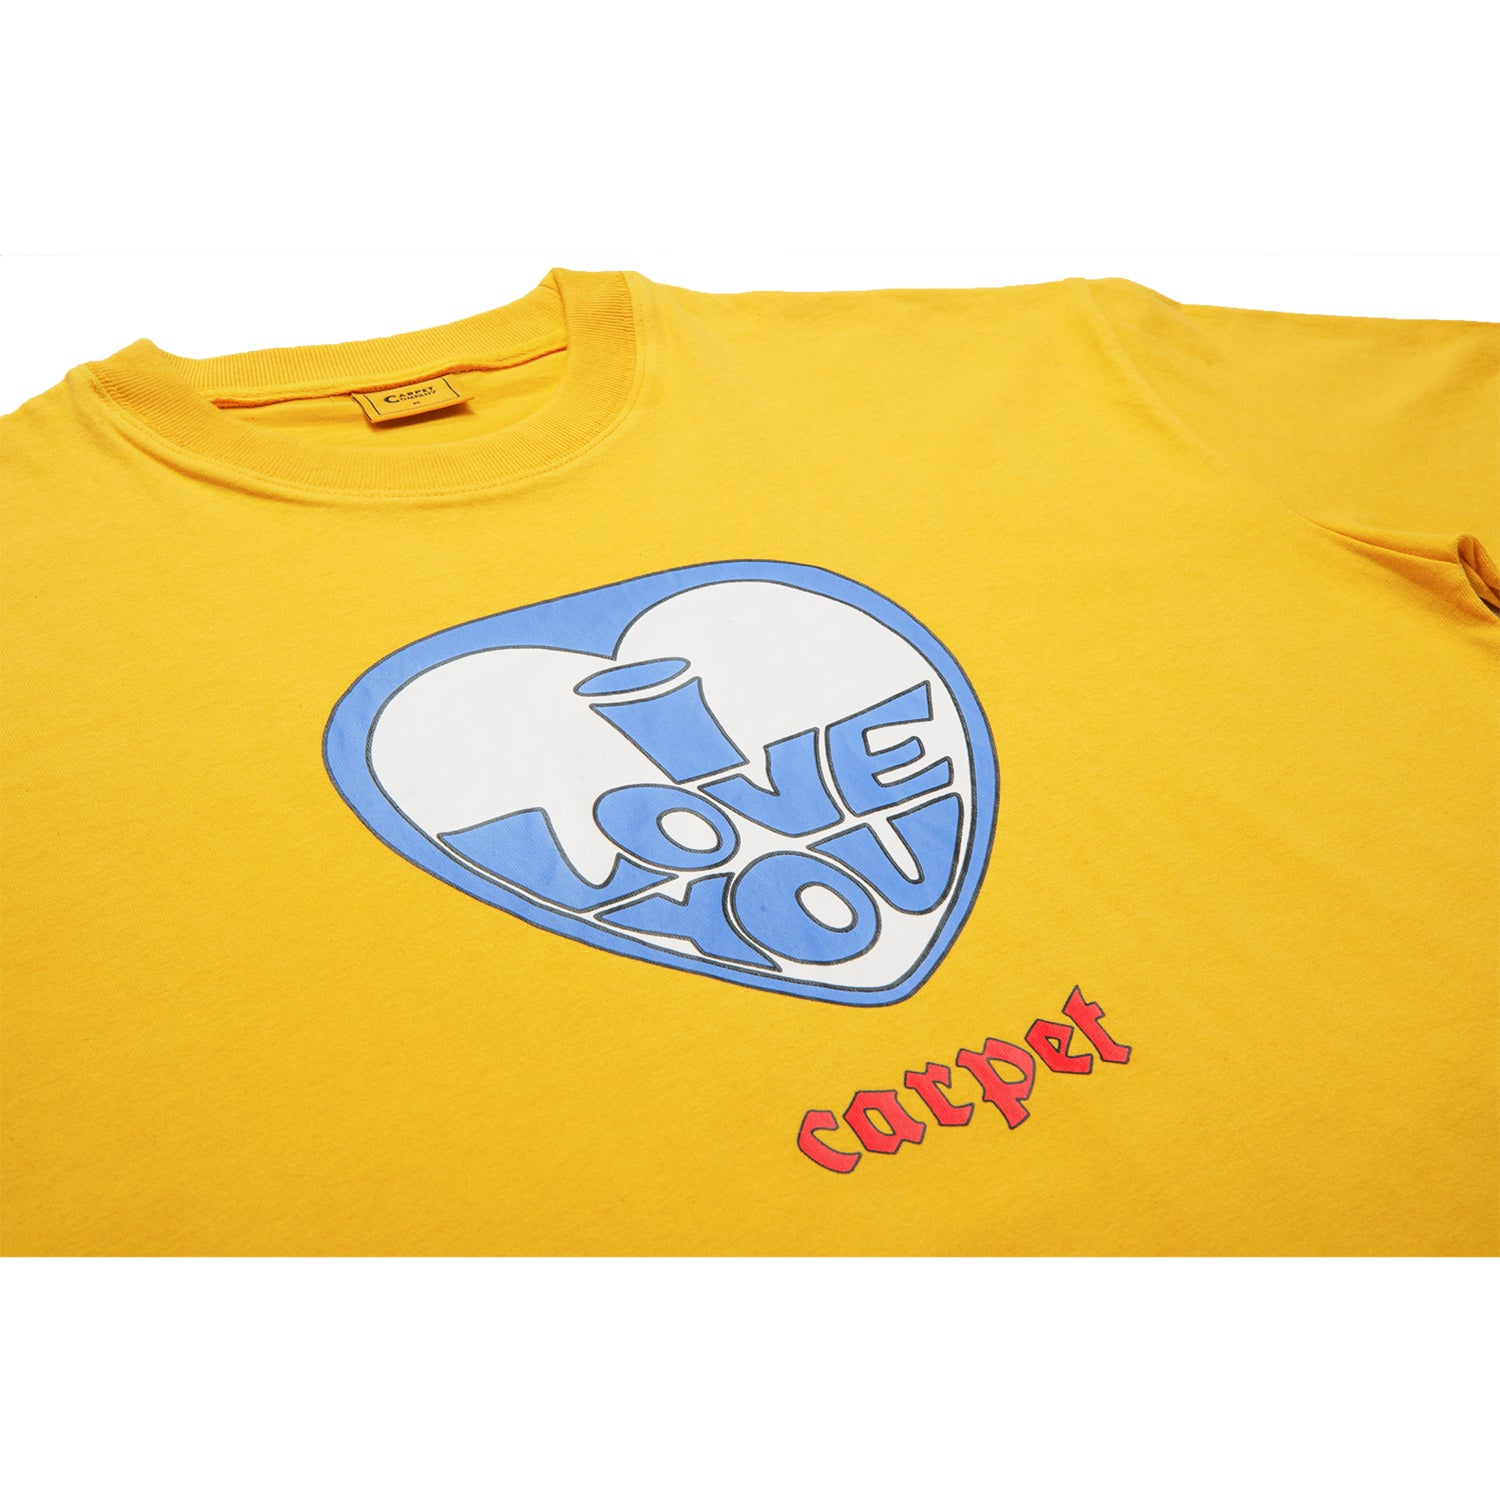 Carpet Company I Love You Tee Mustard